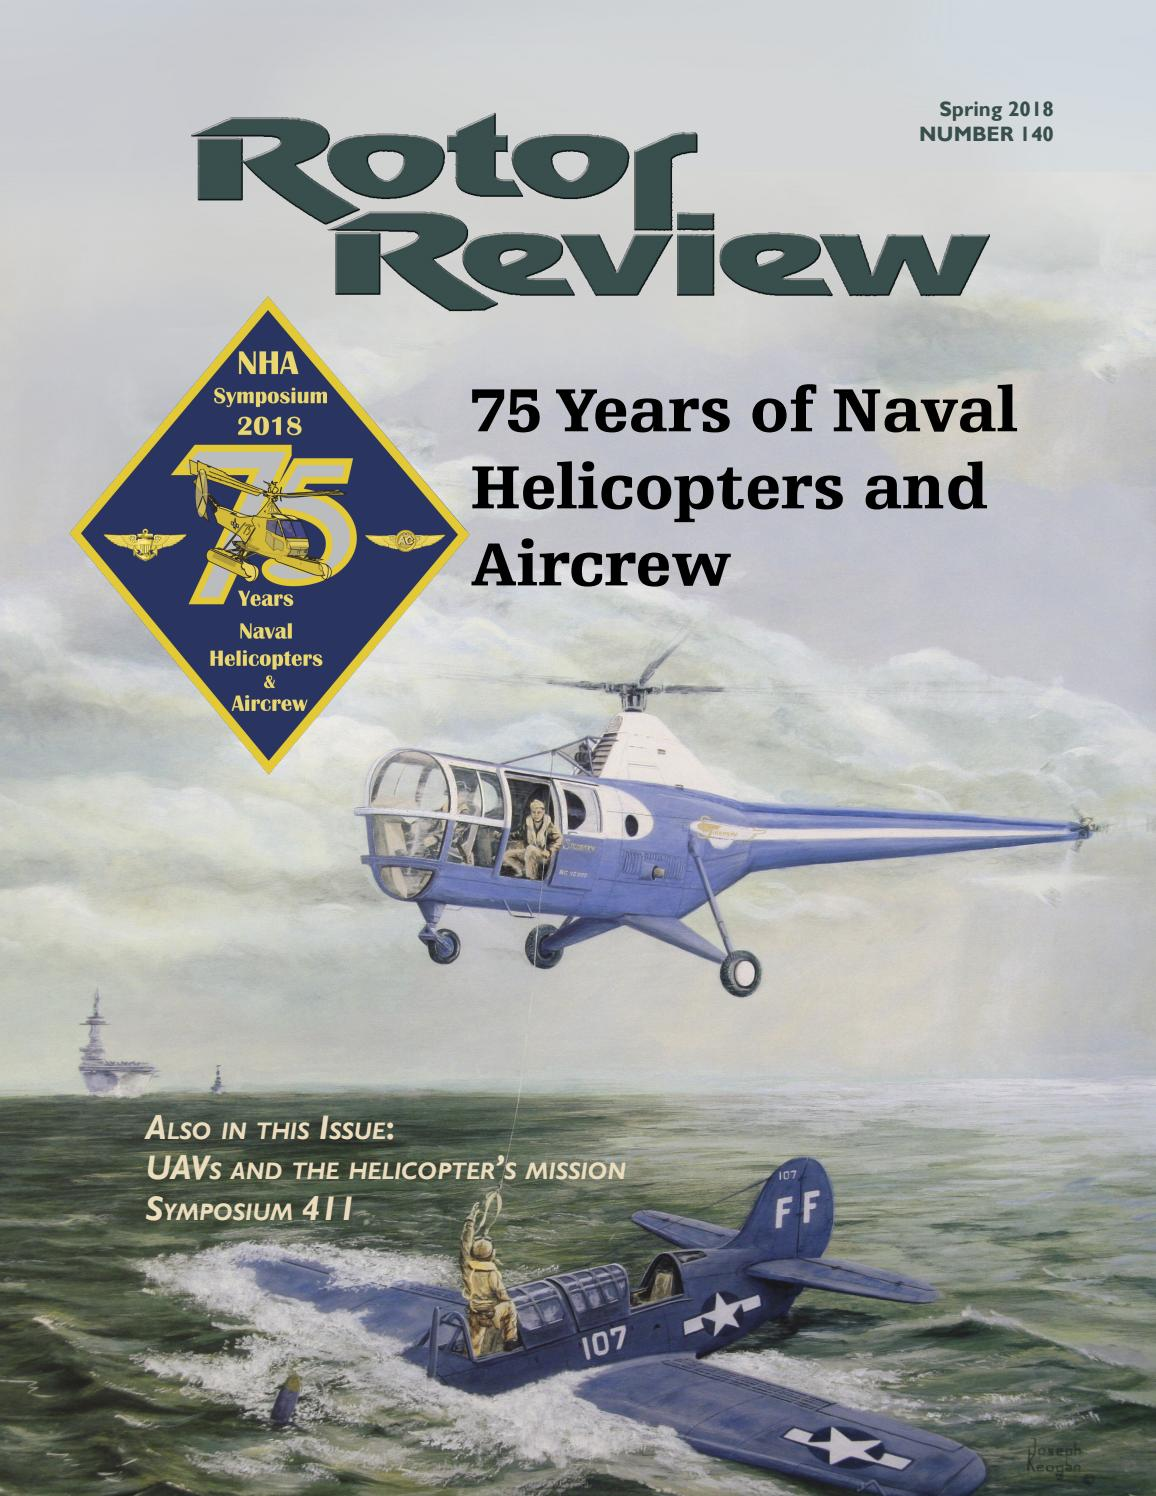 98552dbd437 Rotor Review  140 Spring 2018 by Naval Helicopter Association